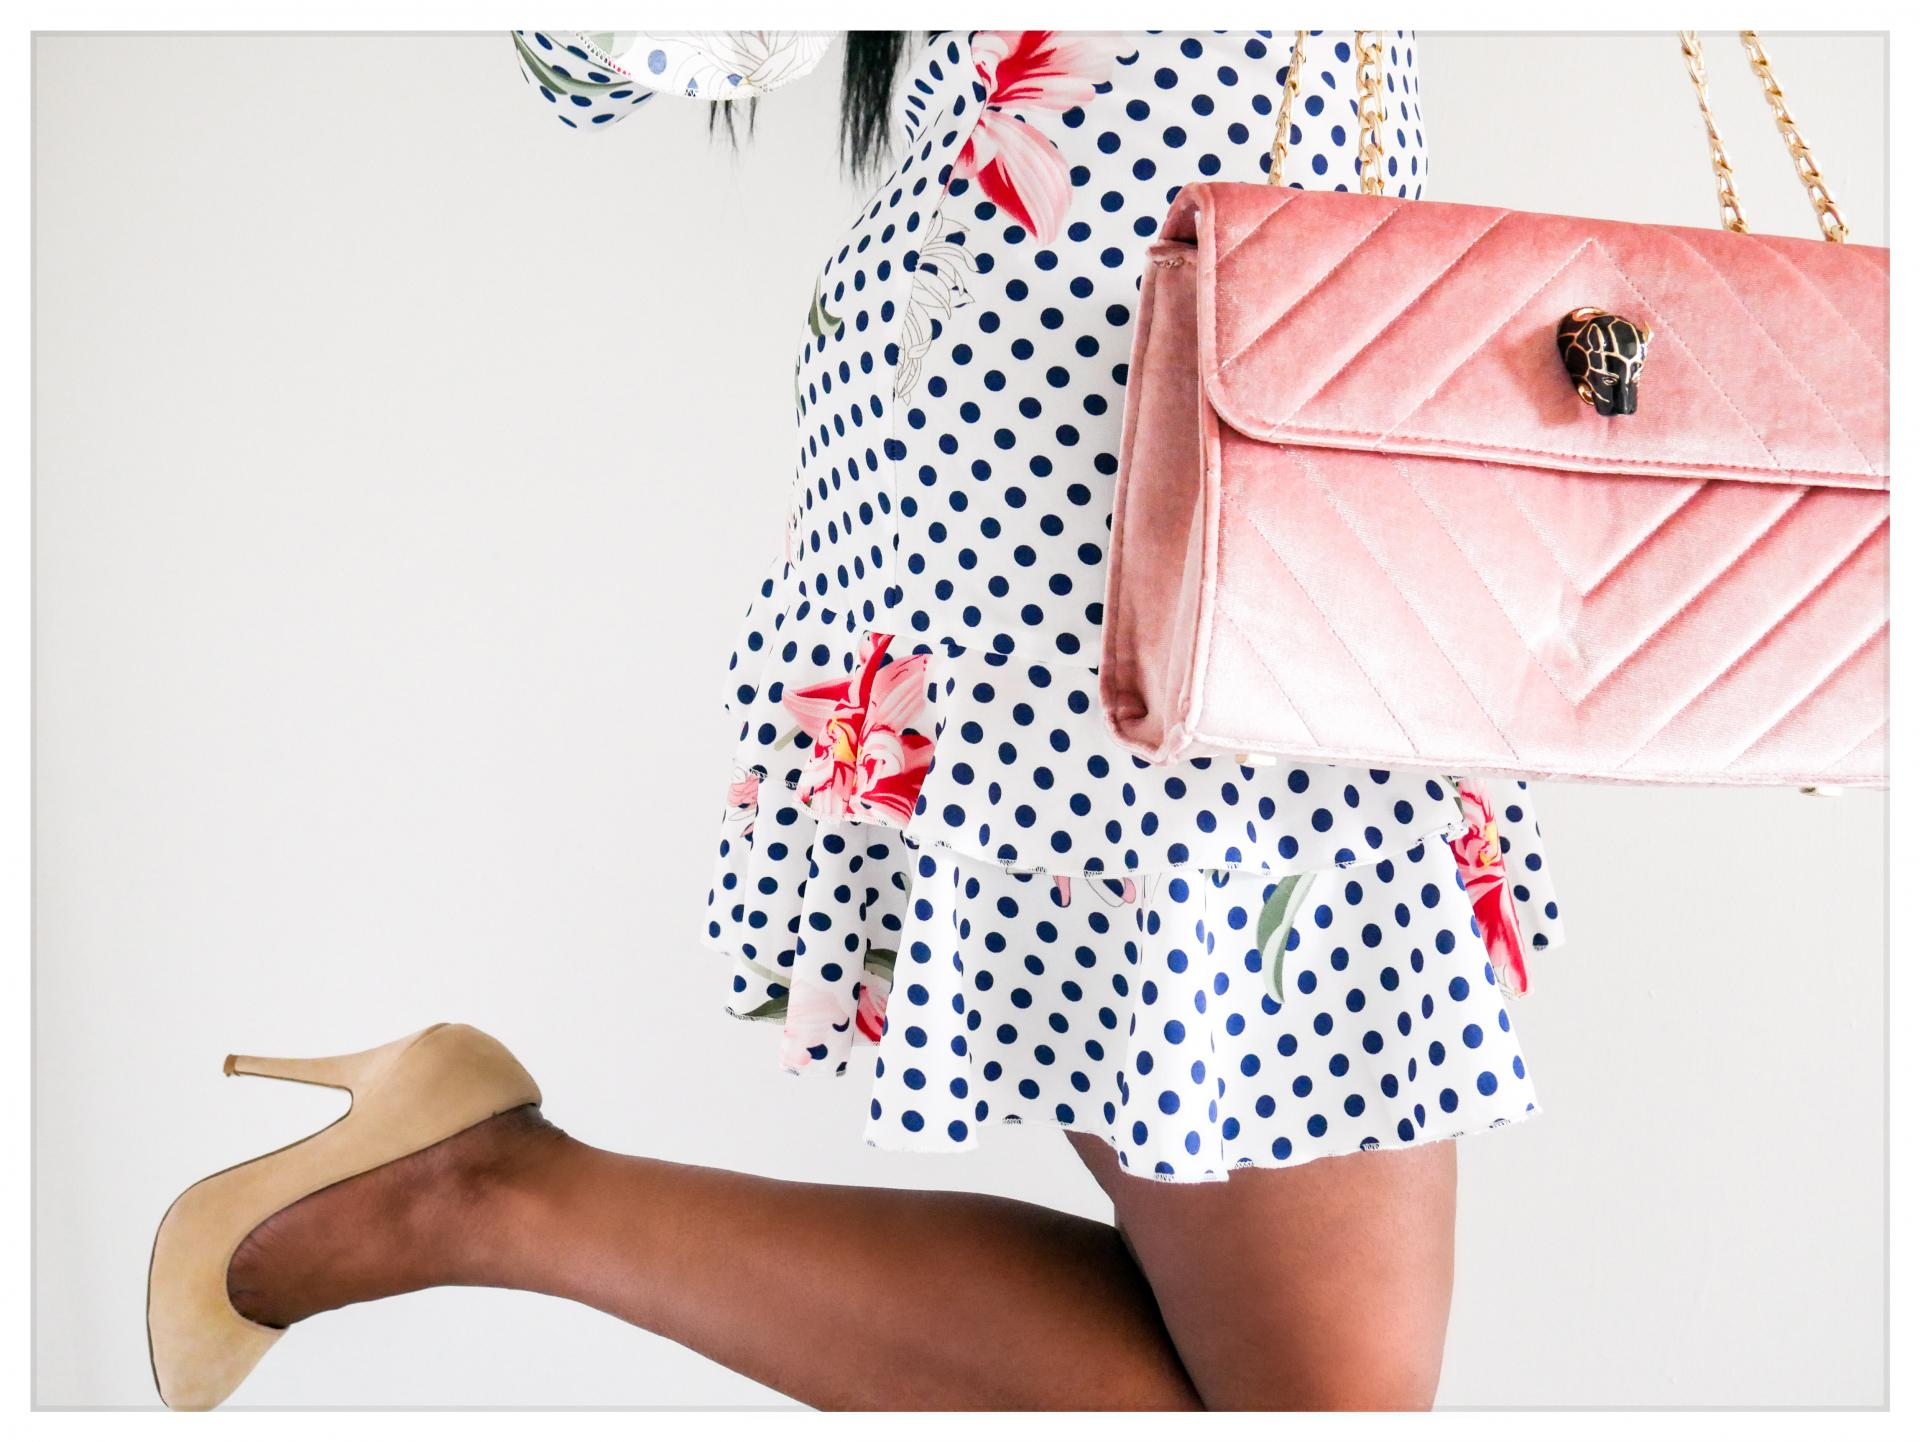 How to wear polka dots| Polka dots are a really versatile, wearable fabric trend to wear| Here we have loads of inspiration for how to wear polka dots in a variety of styles | kittyandb.com #polkadots #fashioninspiration #outfitideas